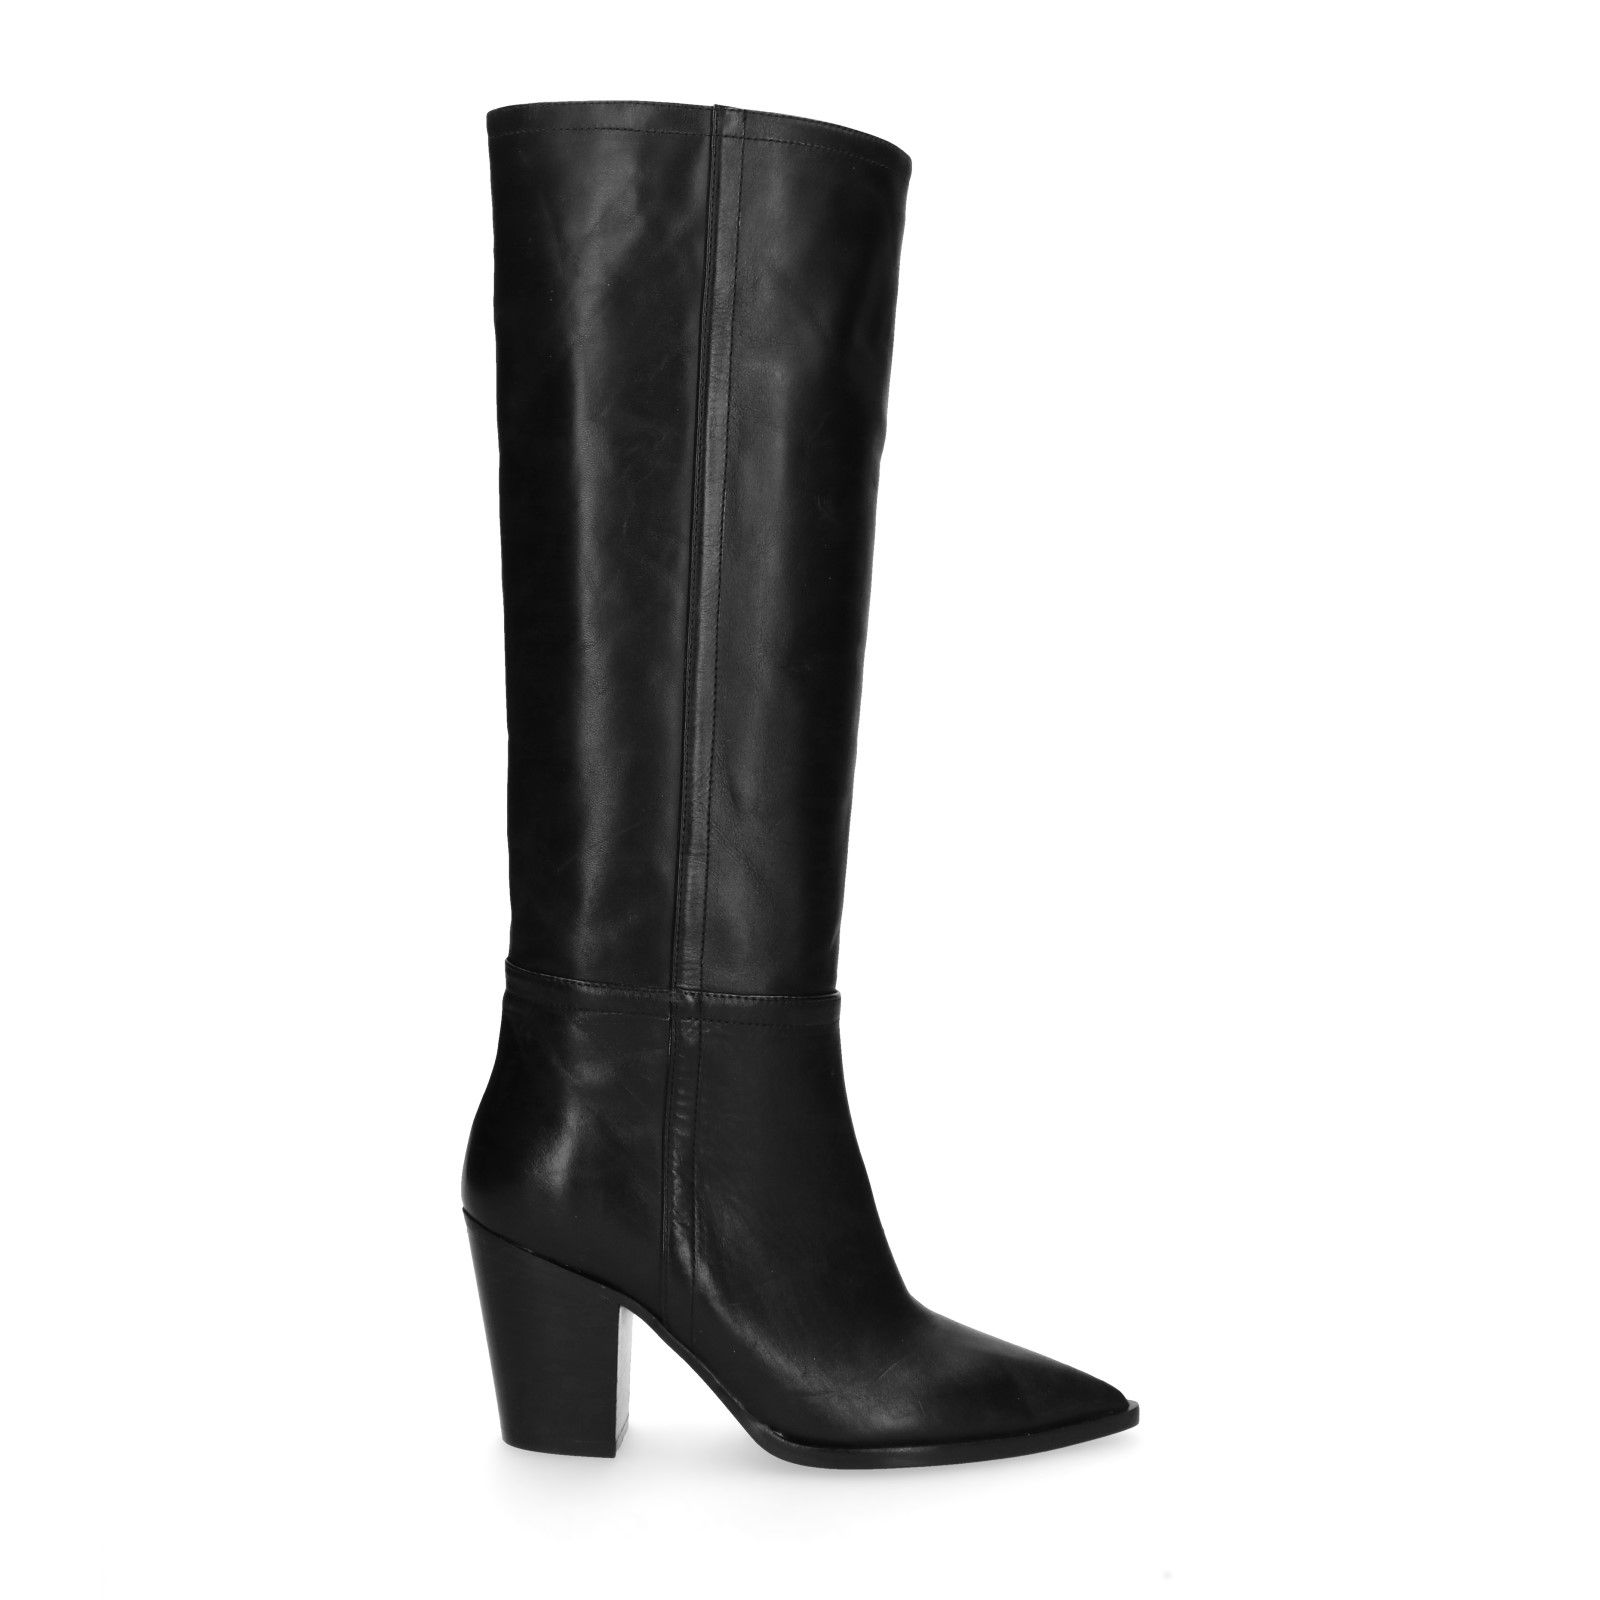 Zwarte laars blokhak Collecties Trends Long boots